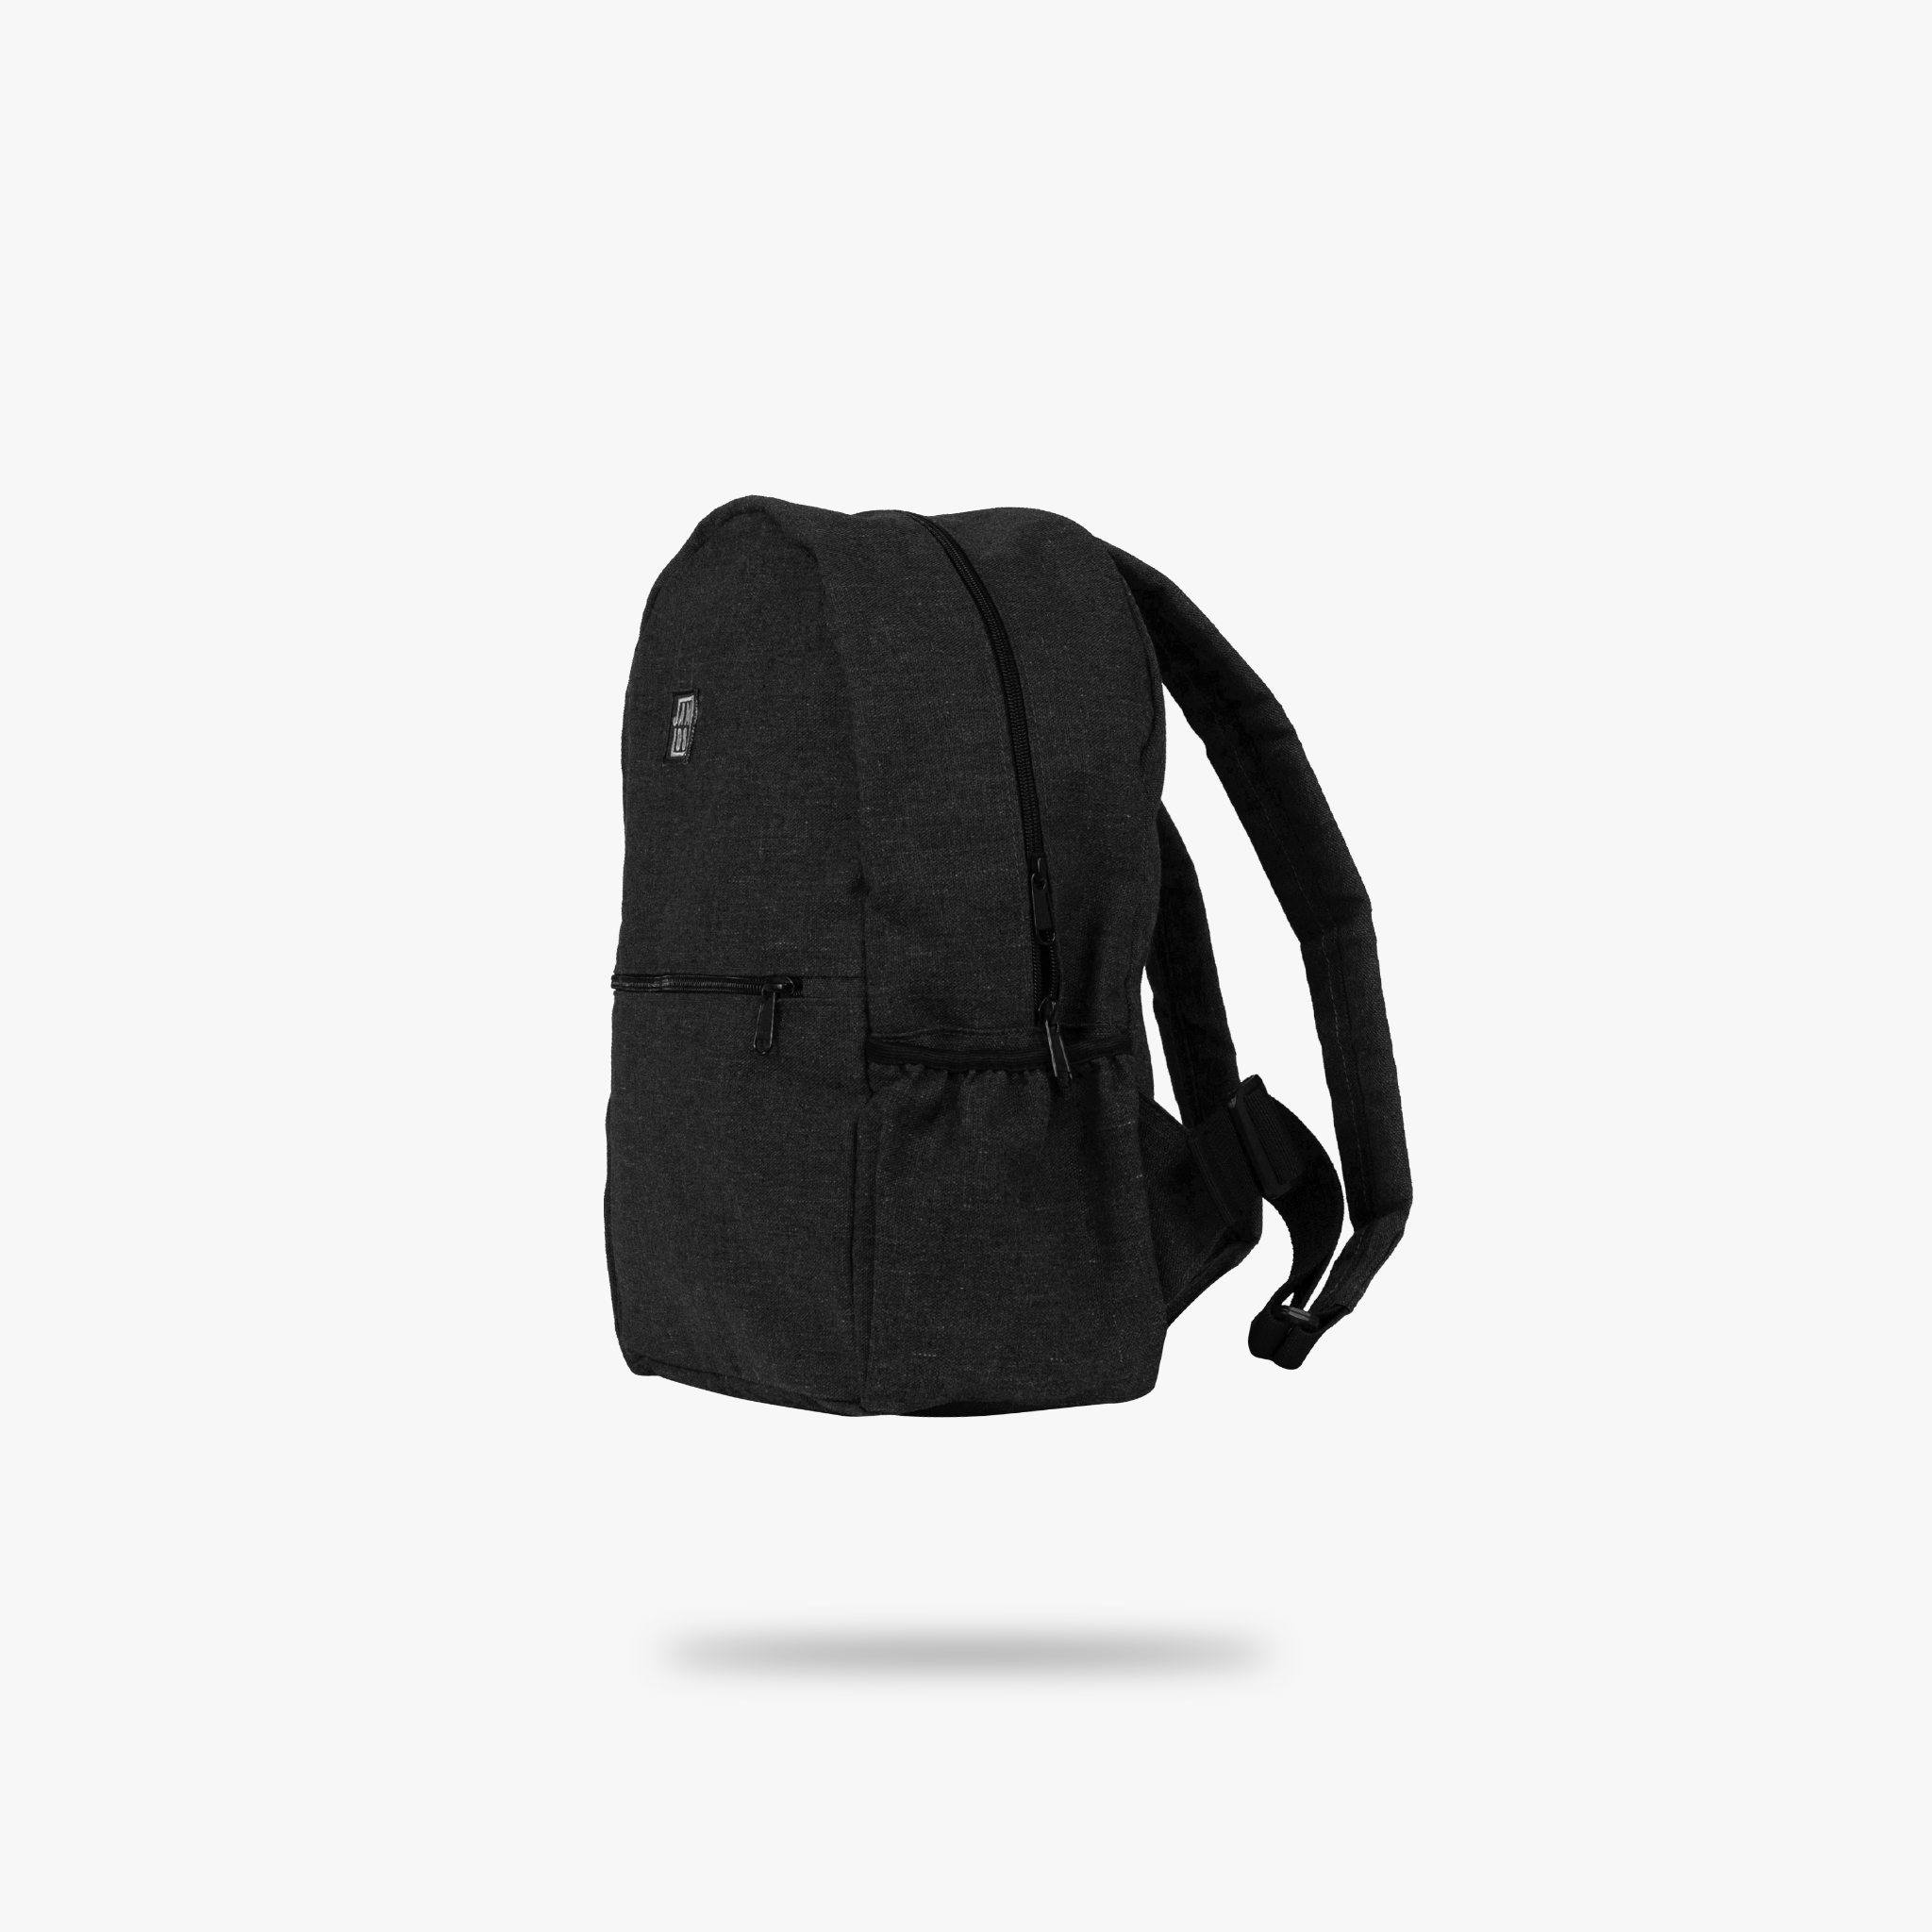 BASIC BACKPACK - Stripes